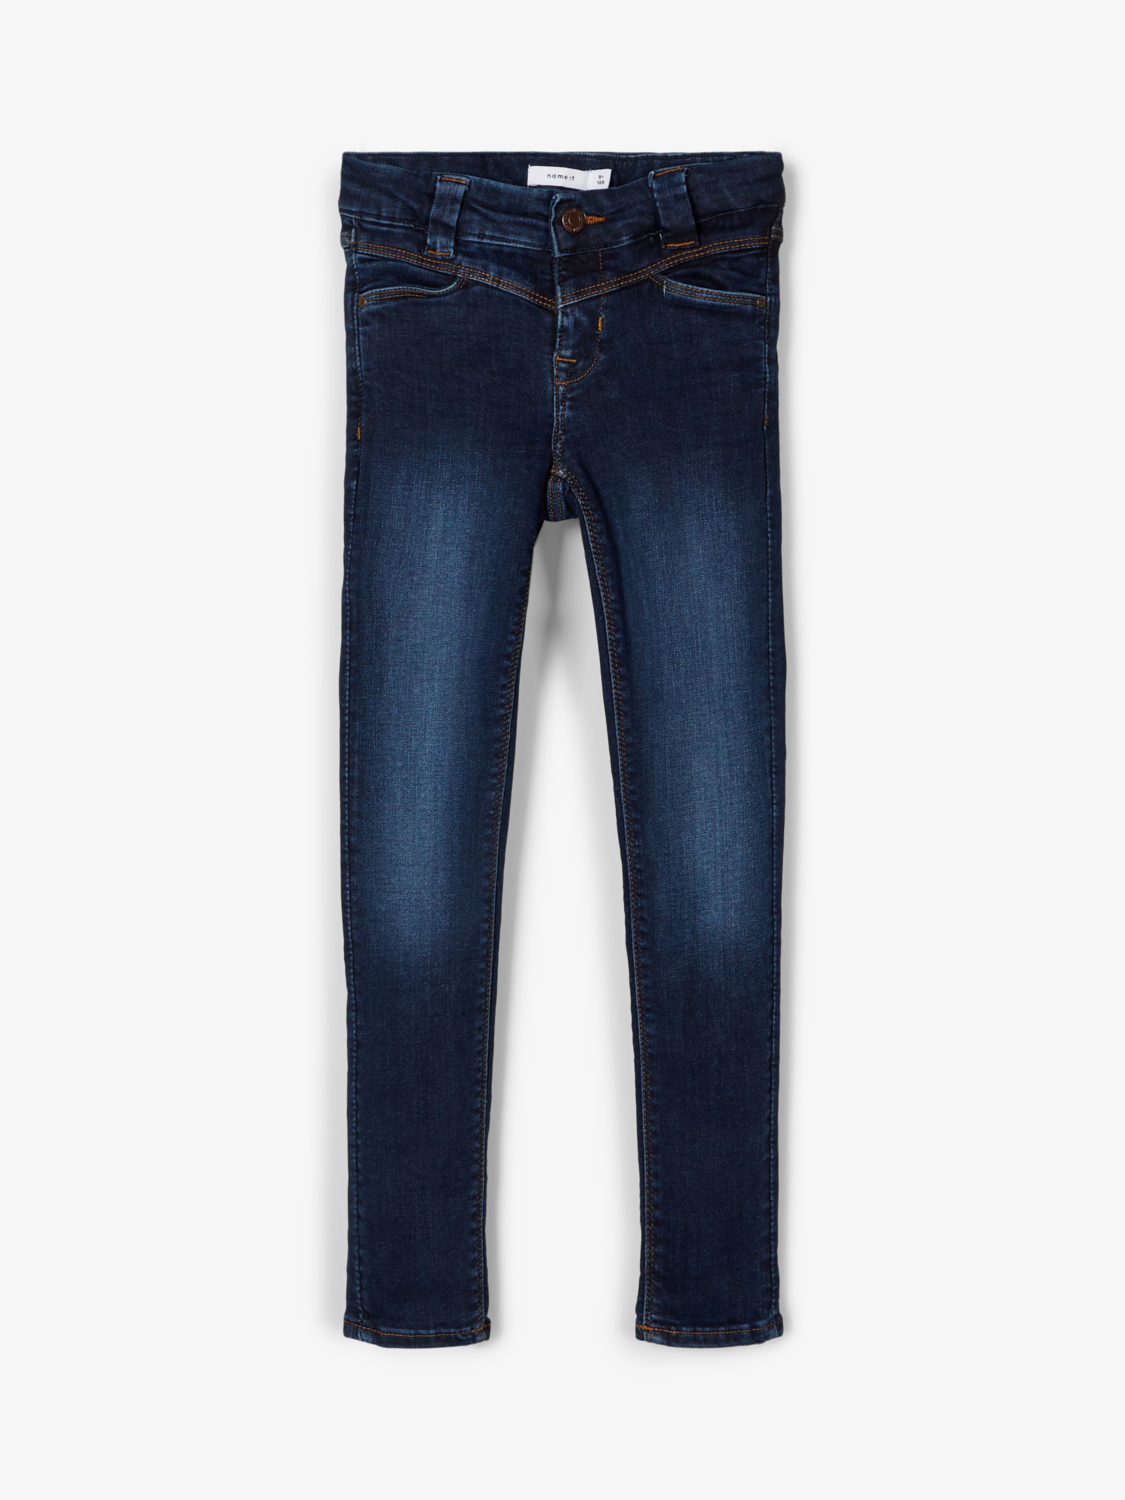 JEANS Polly DNMBATAY 3405